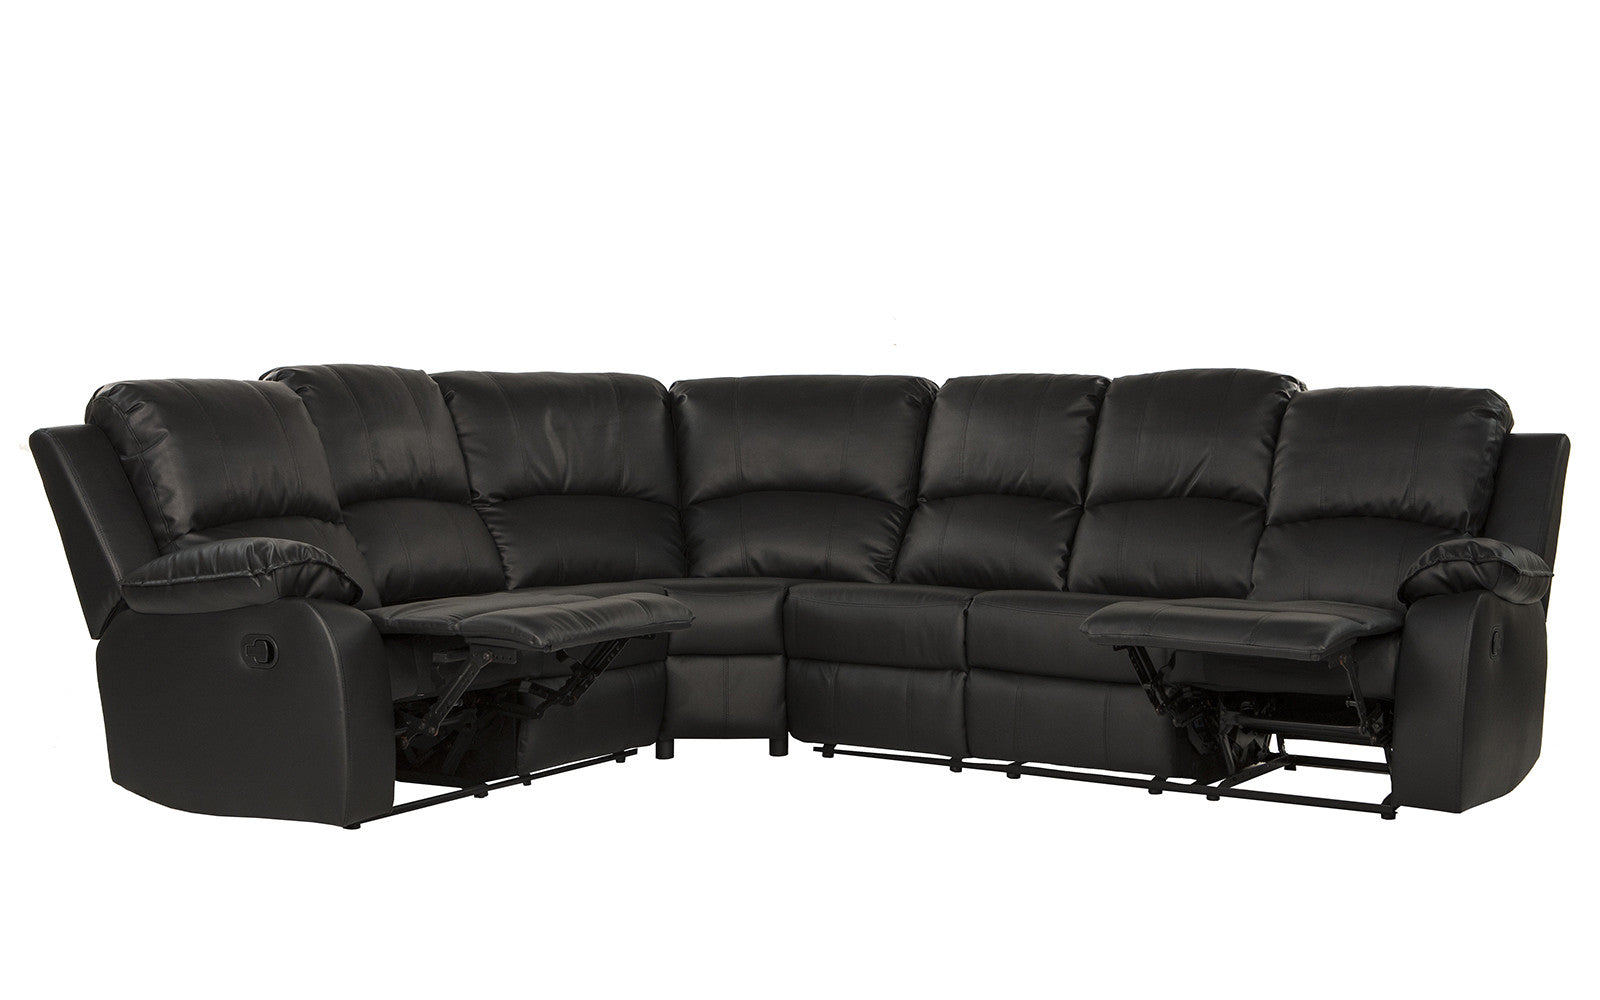 Bonded Leather Recliner Sectional Bond Classic Bonded  : REC10BLACK3 from www.sofamania.com size 1600 x 1000 jpeg 106kB